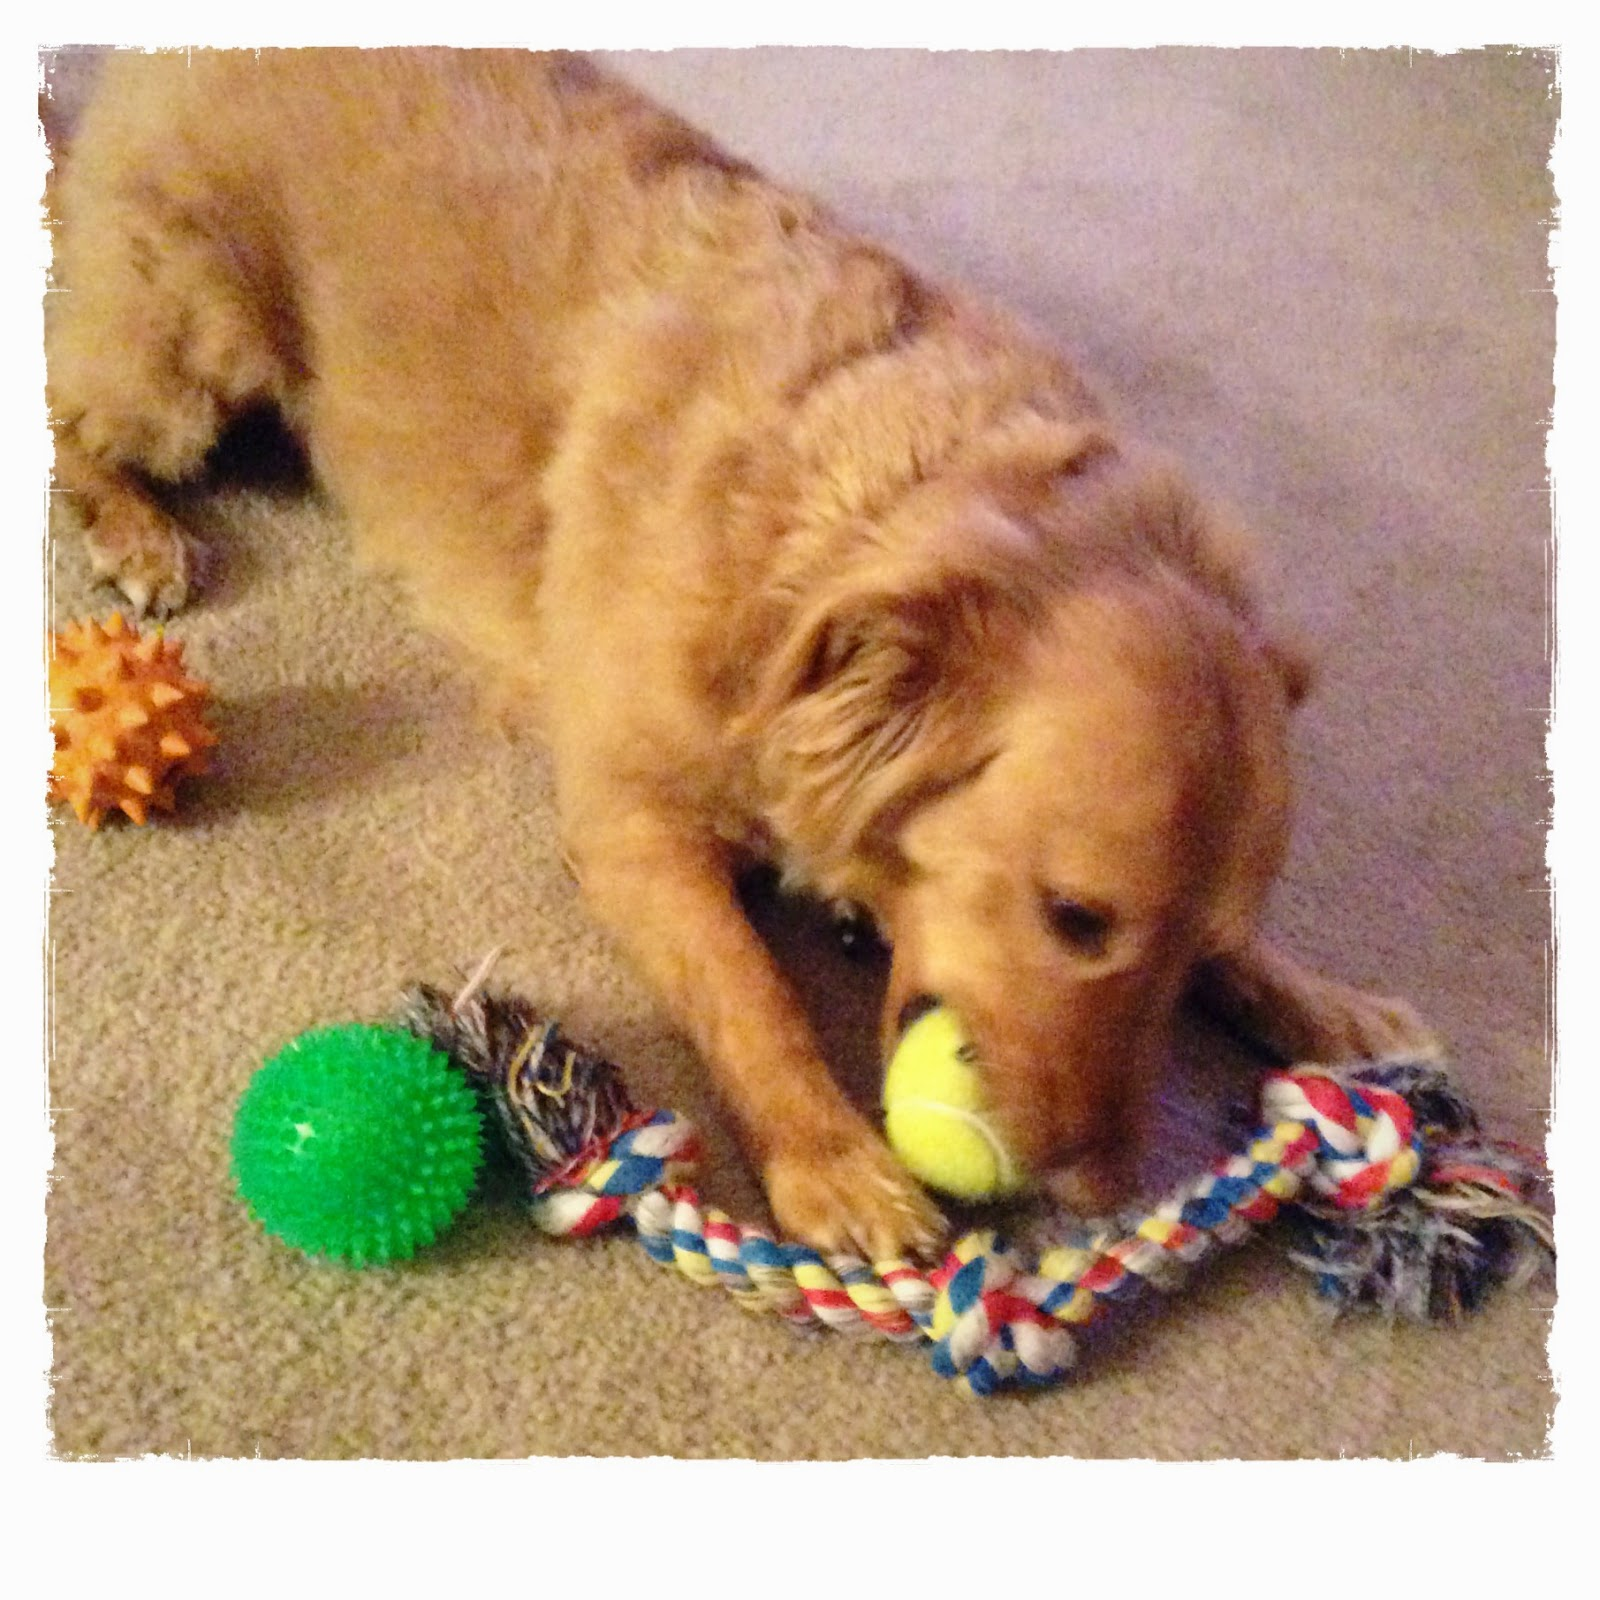 So many dog toys, so little time: Winchester on The 3 Rs Blog